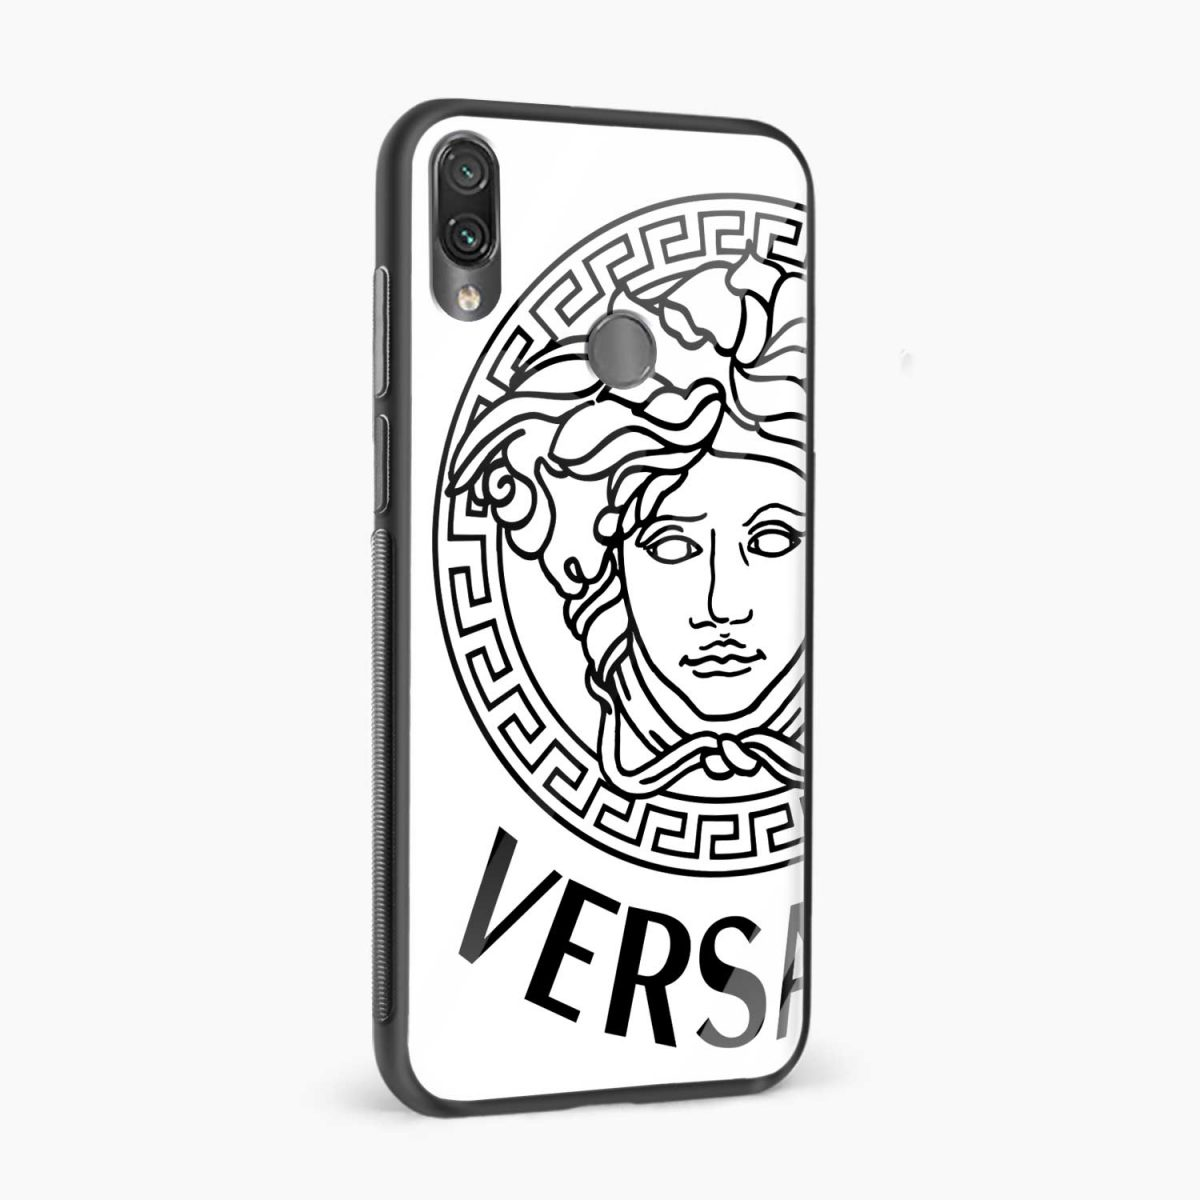 versace black white side view redmi note7 back cover